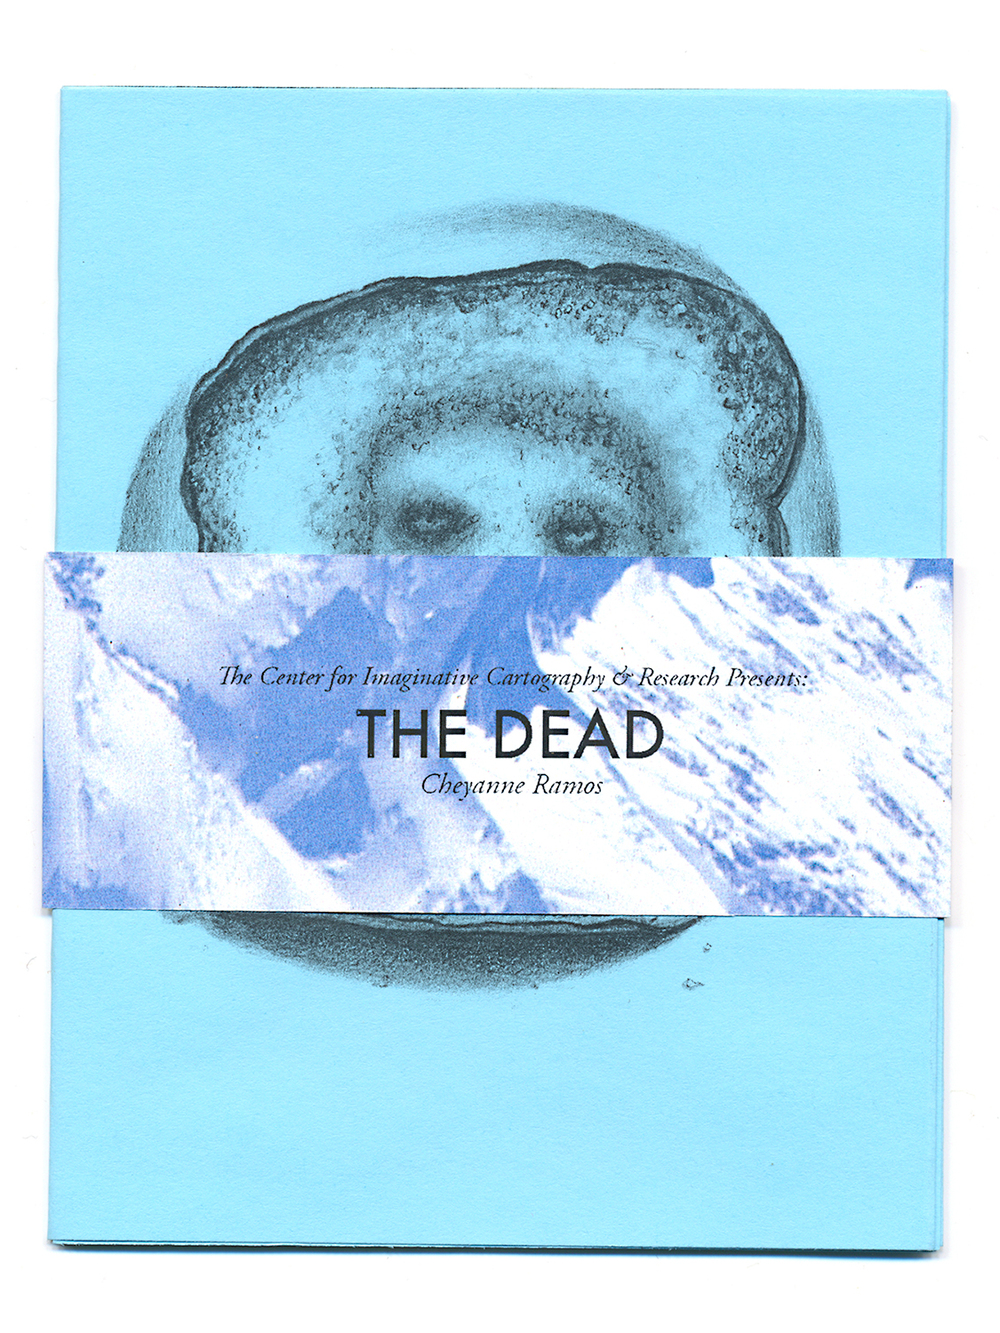 center_presents-the_dead-1500x1125.jpg